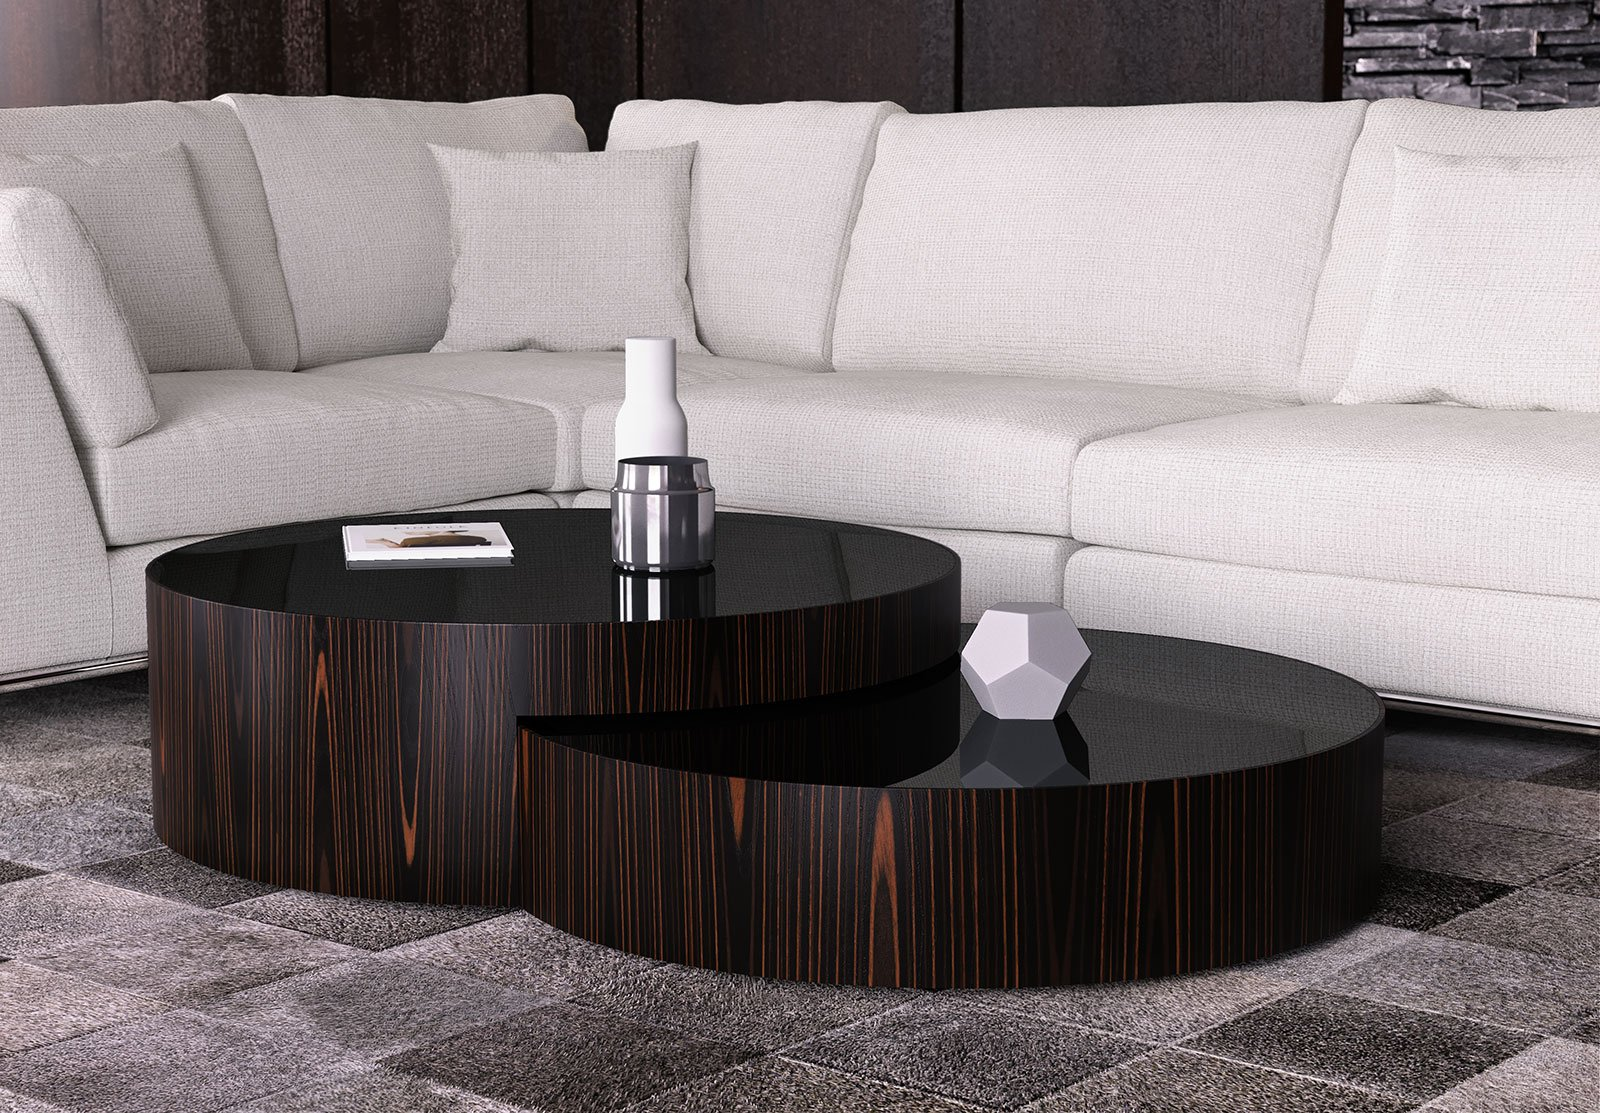 Superb Berkeley Nesting Coffee Table Black Glass On Cathedral Ebony By Modloft